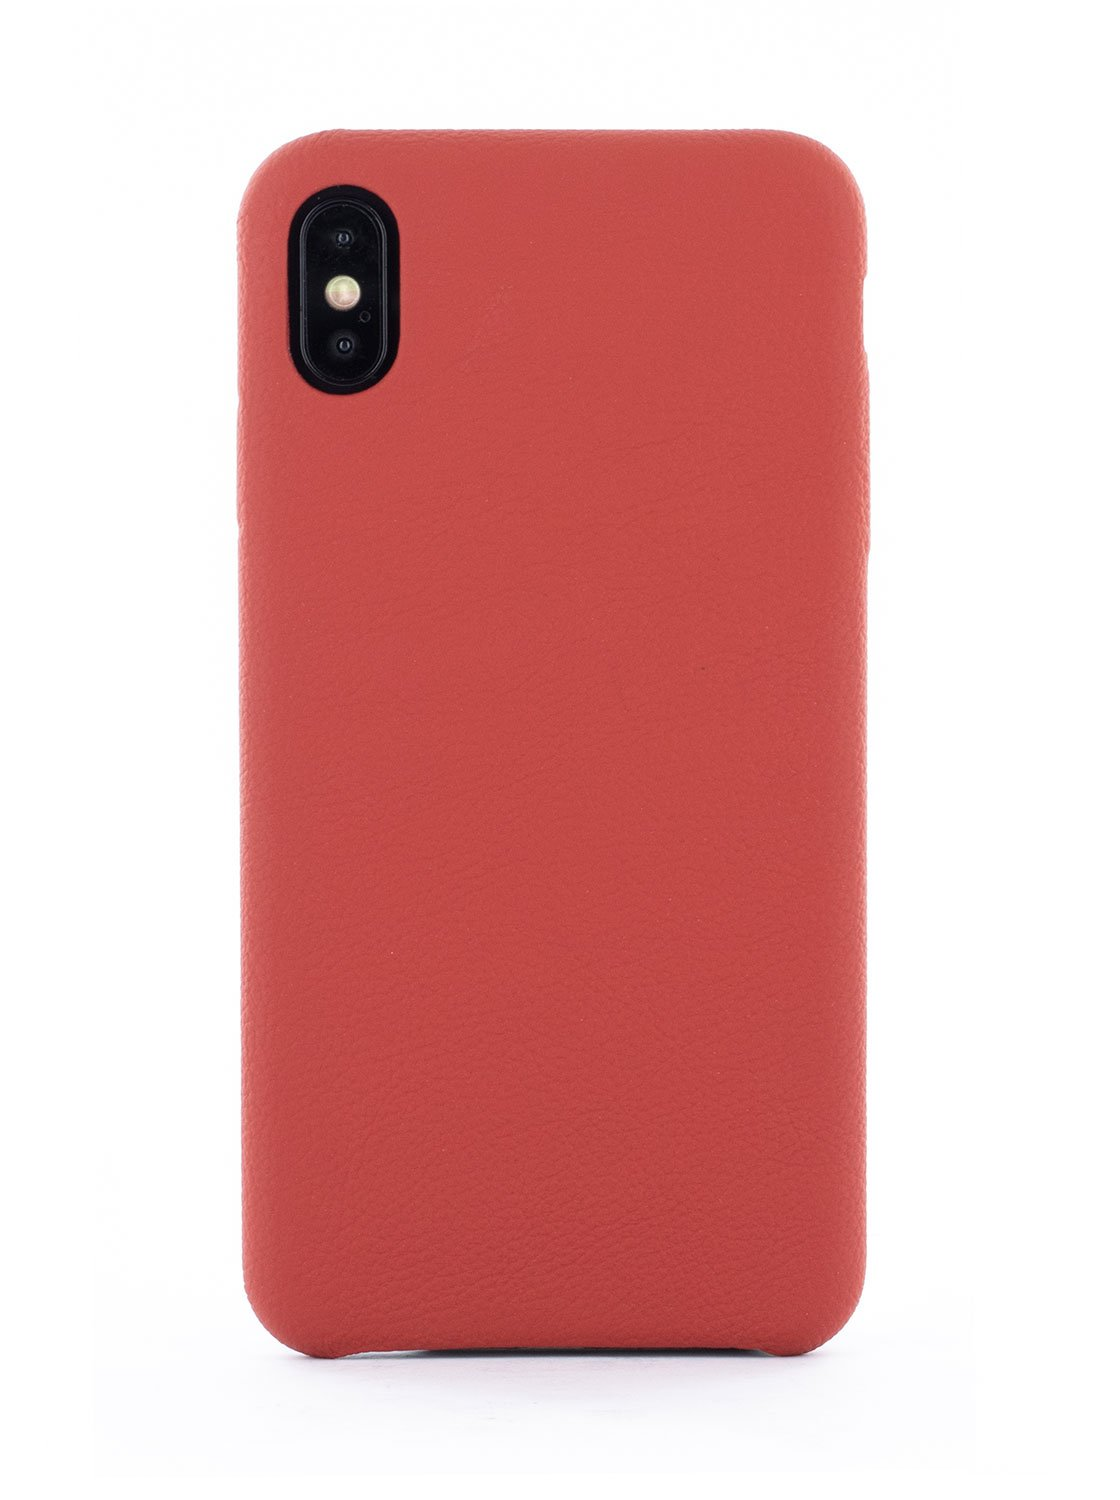 AEON Luxury Leather Wrapped Back Shell for iPhone XS Max - Red